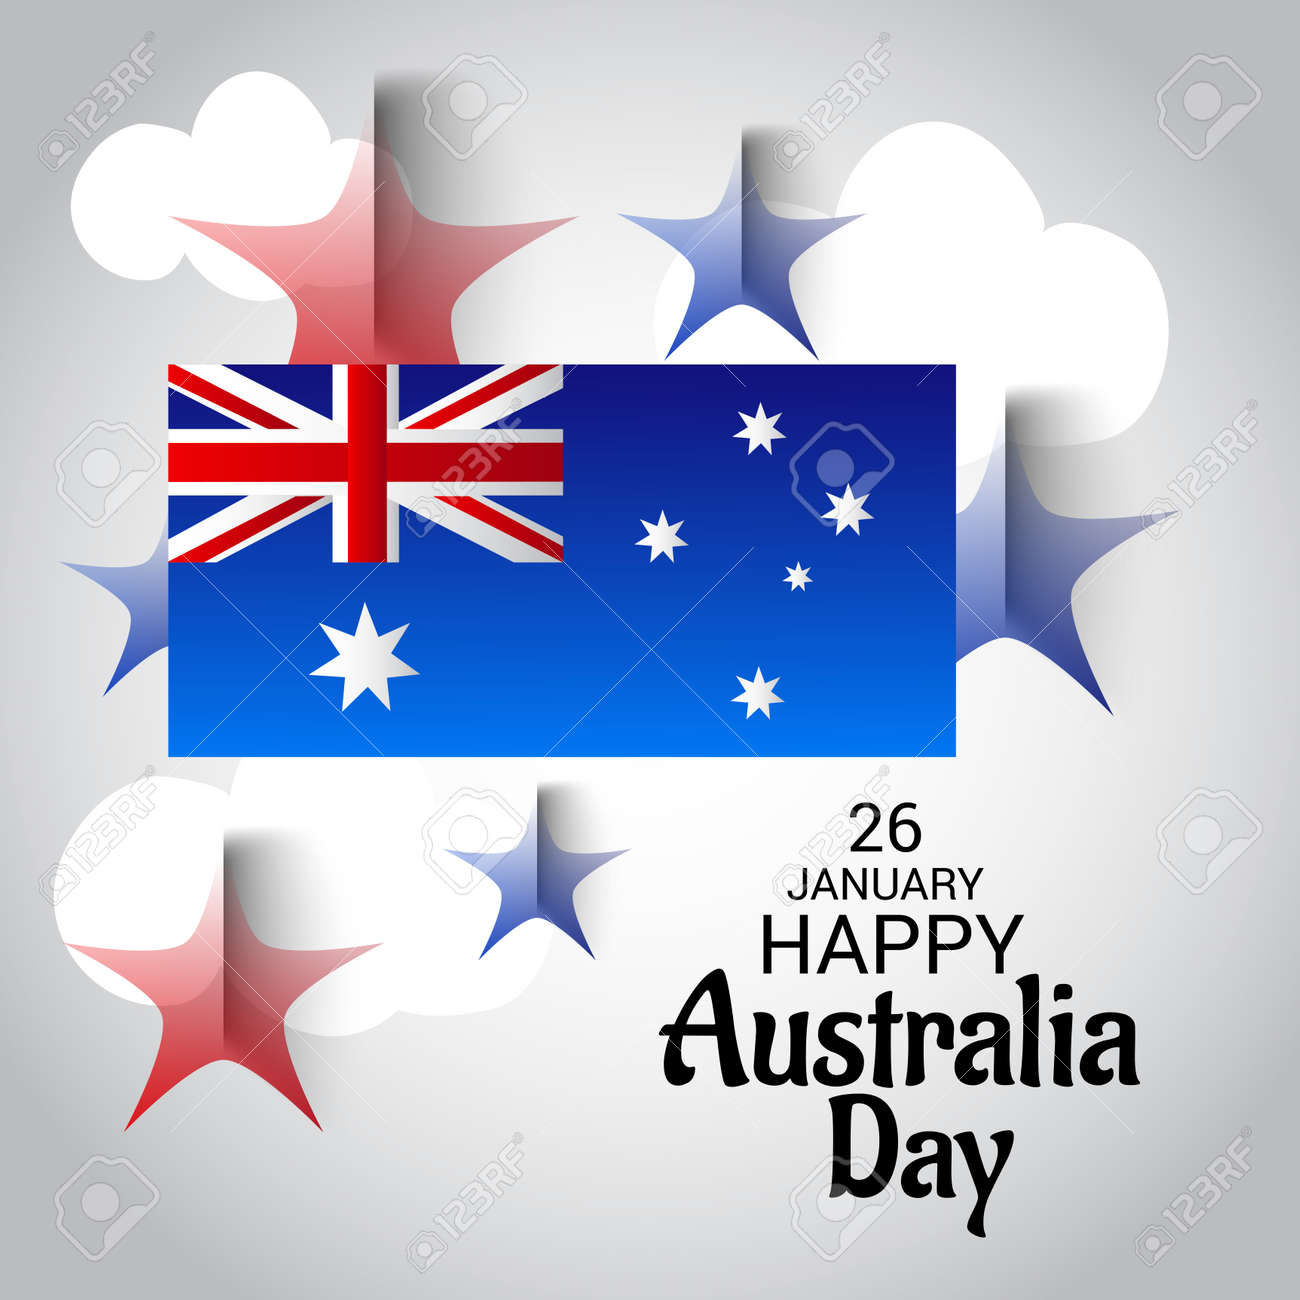 Happy australia day greeting card with australian flag design happy australia day greeting card with australian flag design stock vector 94132461 m4hsunfo